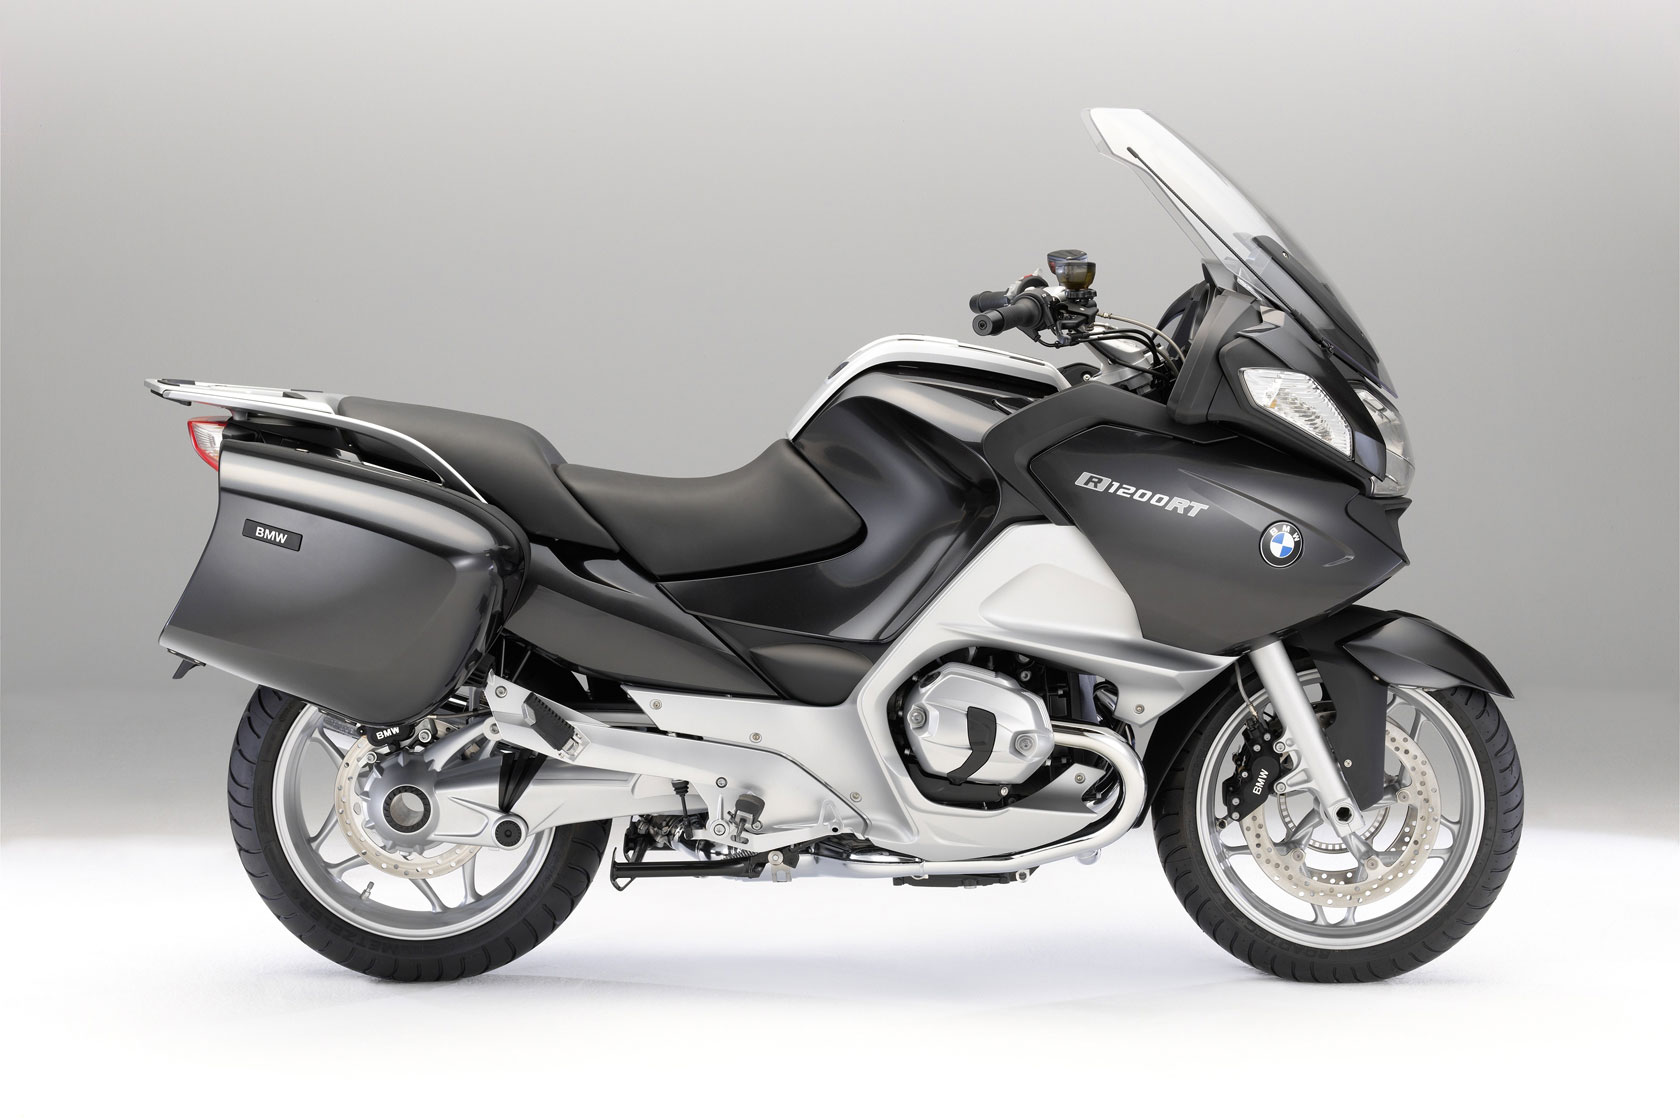 bmw r 1200 rt specs 2010 2011 autoevolution. Black Bedroom Furniture Sets. Home Design Ideas